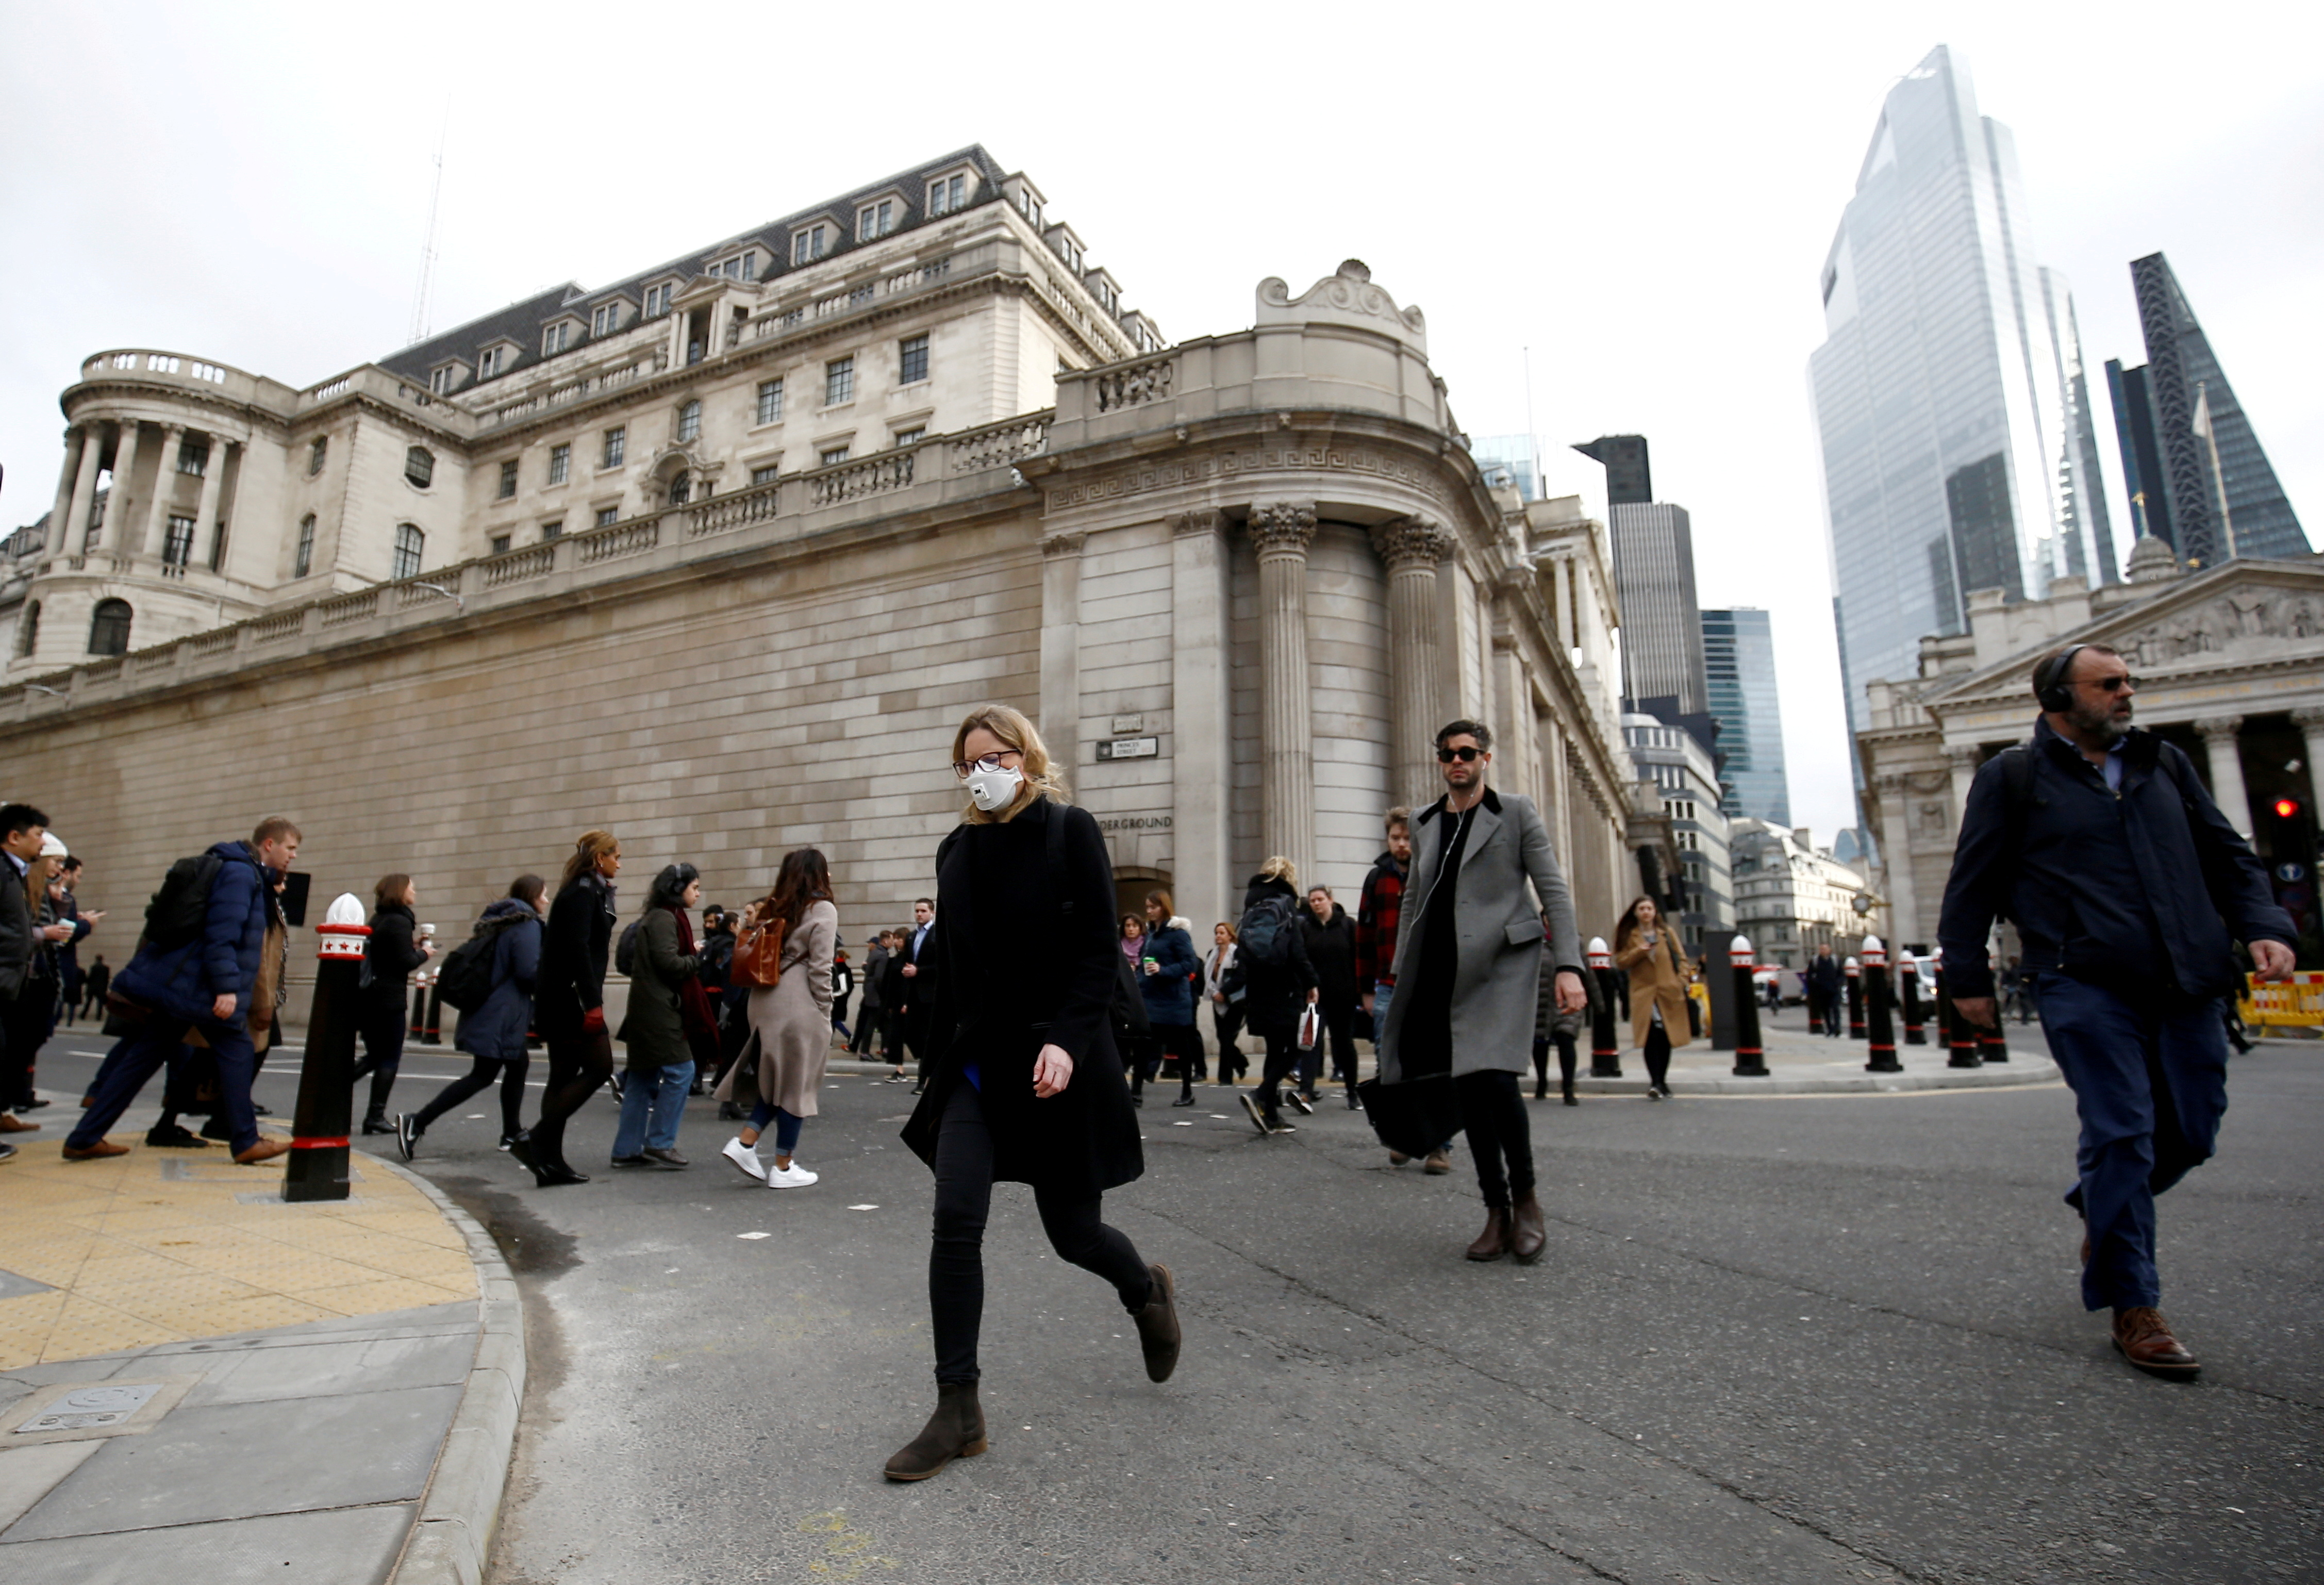 A woman wearing a protective face mask, following an outbreak of the coronavirus, walks in front of the Bank of England in London, Britain March 11, 2020. REUTERS/Henry Nicholls